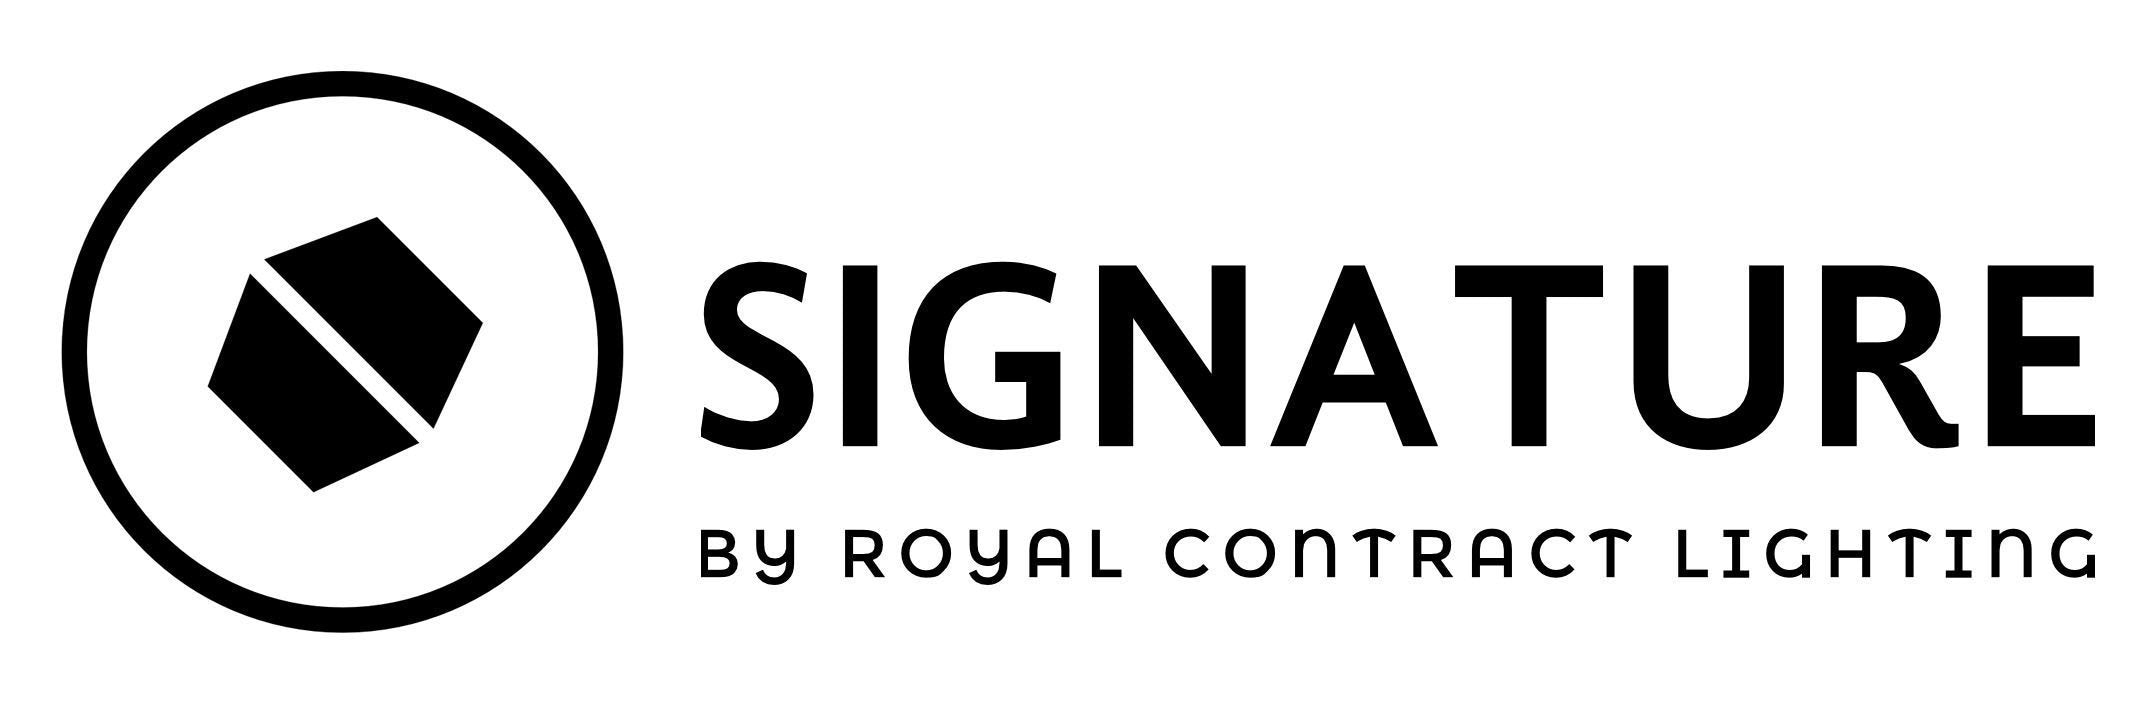 Signature by Royal Contract Lighting